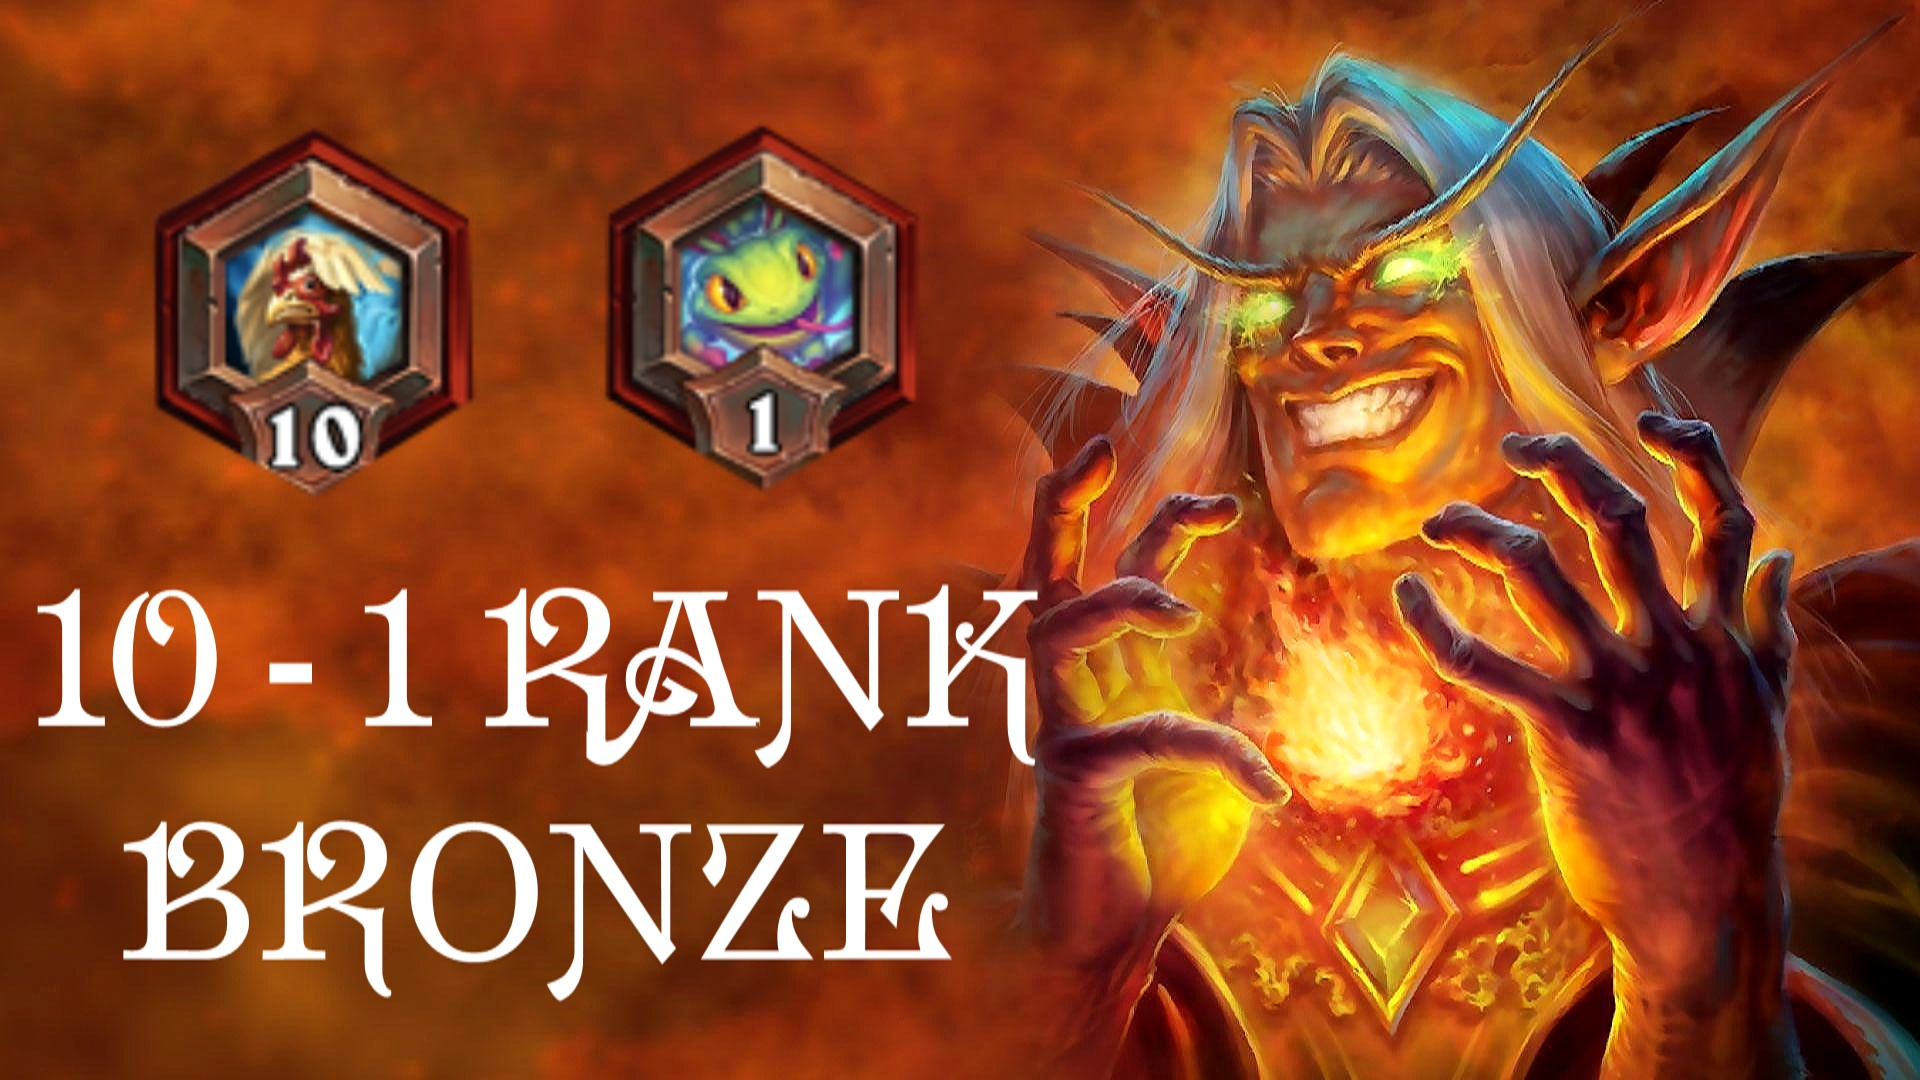 Hearthstone: 10-1 RANK (Bronze) Standart Mode GBD - e2p.com